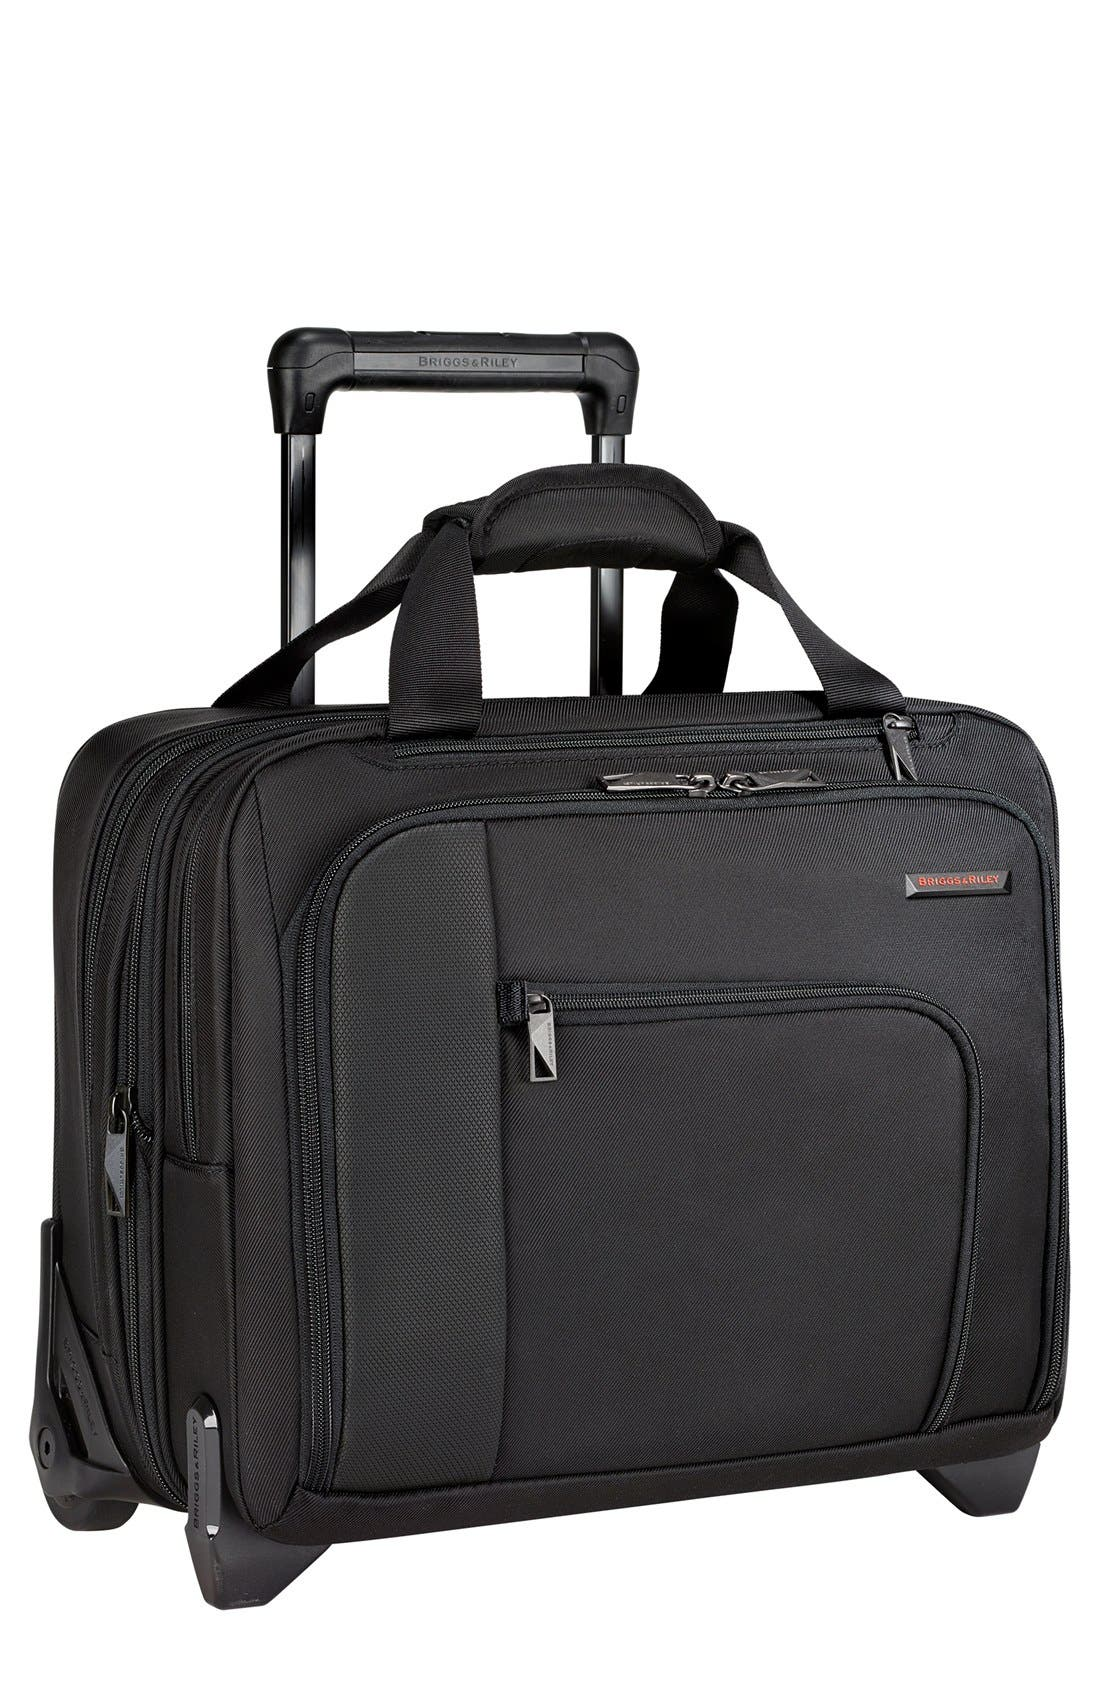 BRIGGS & RILEY 'Verb - Propel' Rolling Briefcase